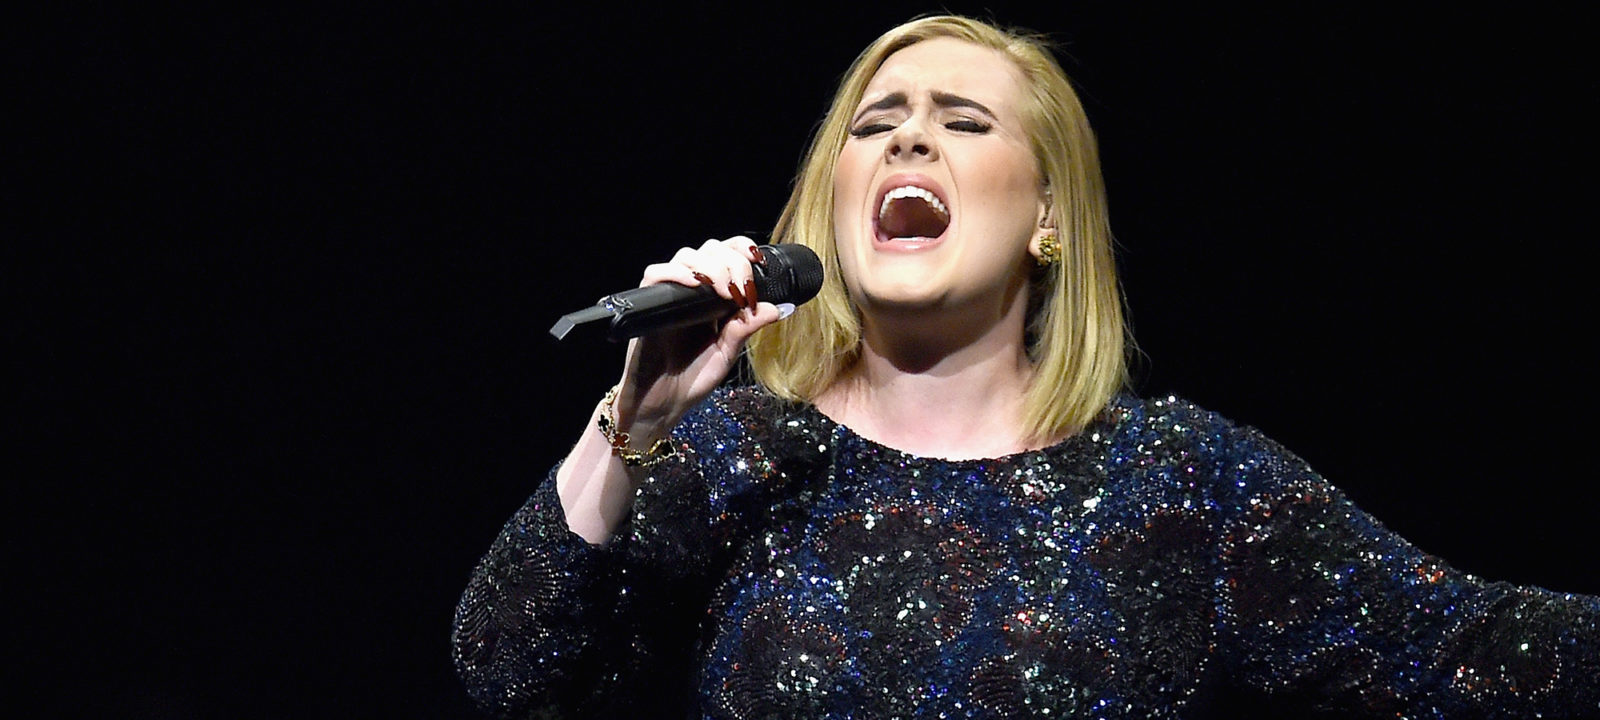 Adele Live 2016 – North American Tour In Los Angeles, CA